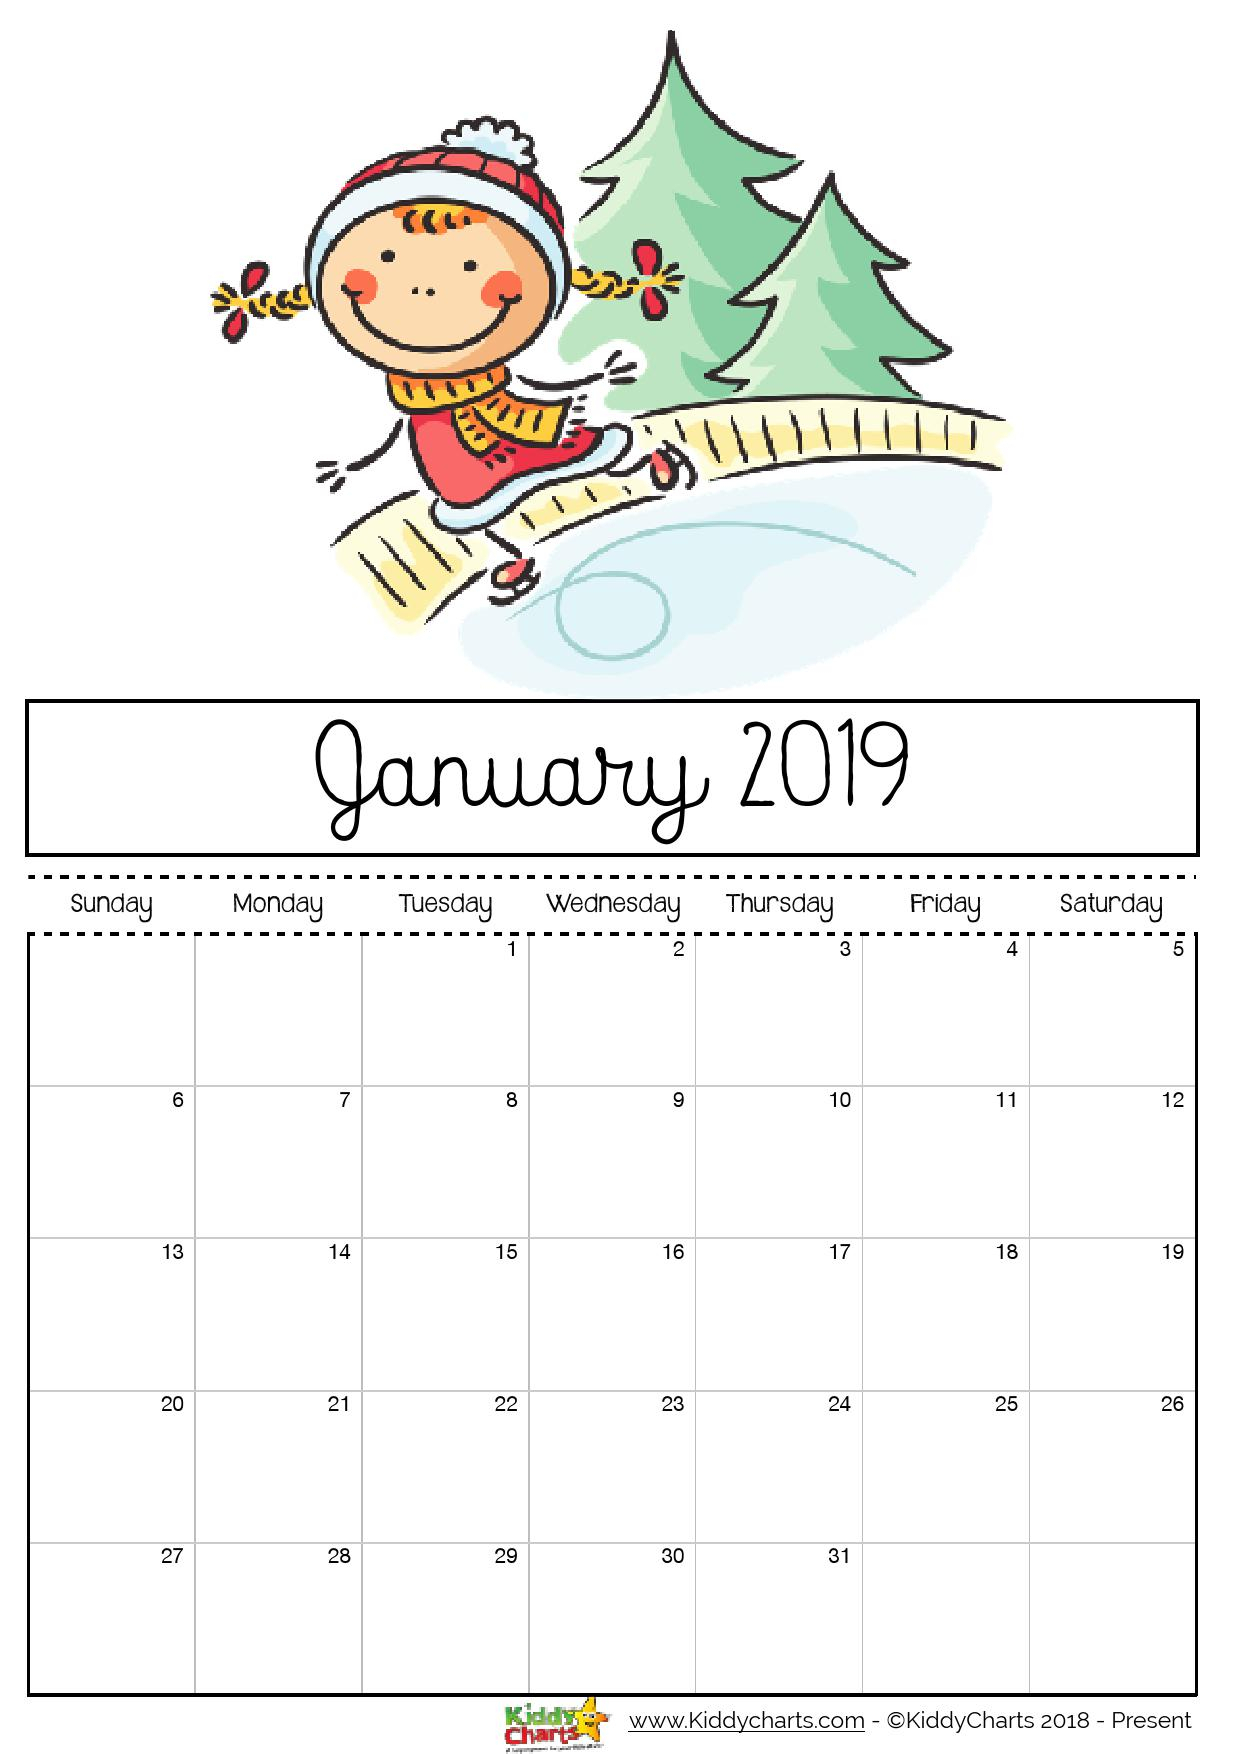 Free Printable 2019 Calendar - Print Yours Here | Kiddycharts regarding Monthly Calendar Template Kids